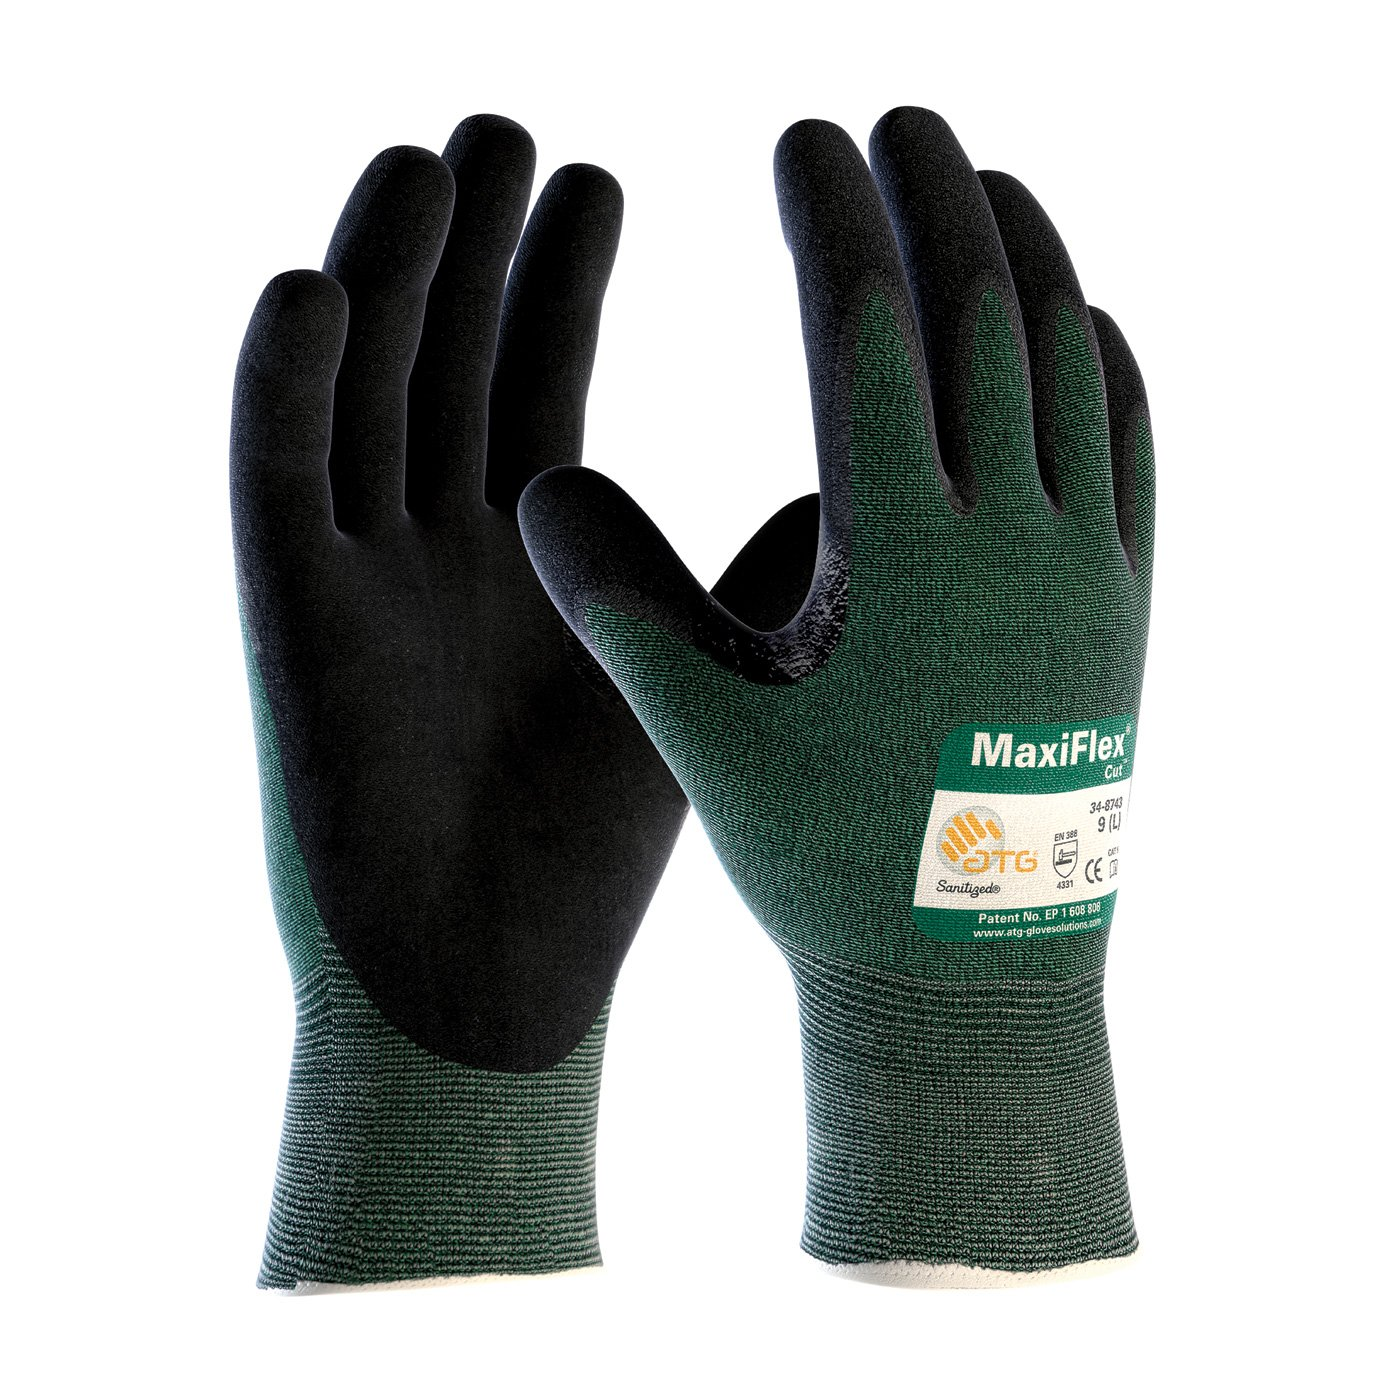 3 Pack MaxiFlex Cut 34-8743 Cut Resistant Nitrile Coated Work Gloves with Green Knit Shell and Premium Nitrile Coated Micro-Foam Grip on Palm & Fingers. Size: Large